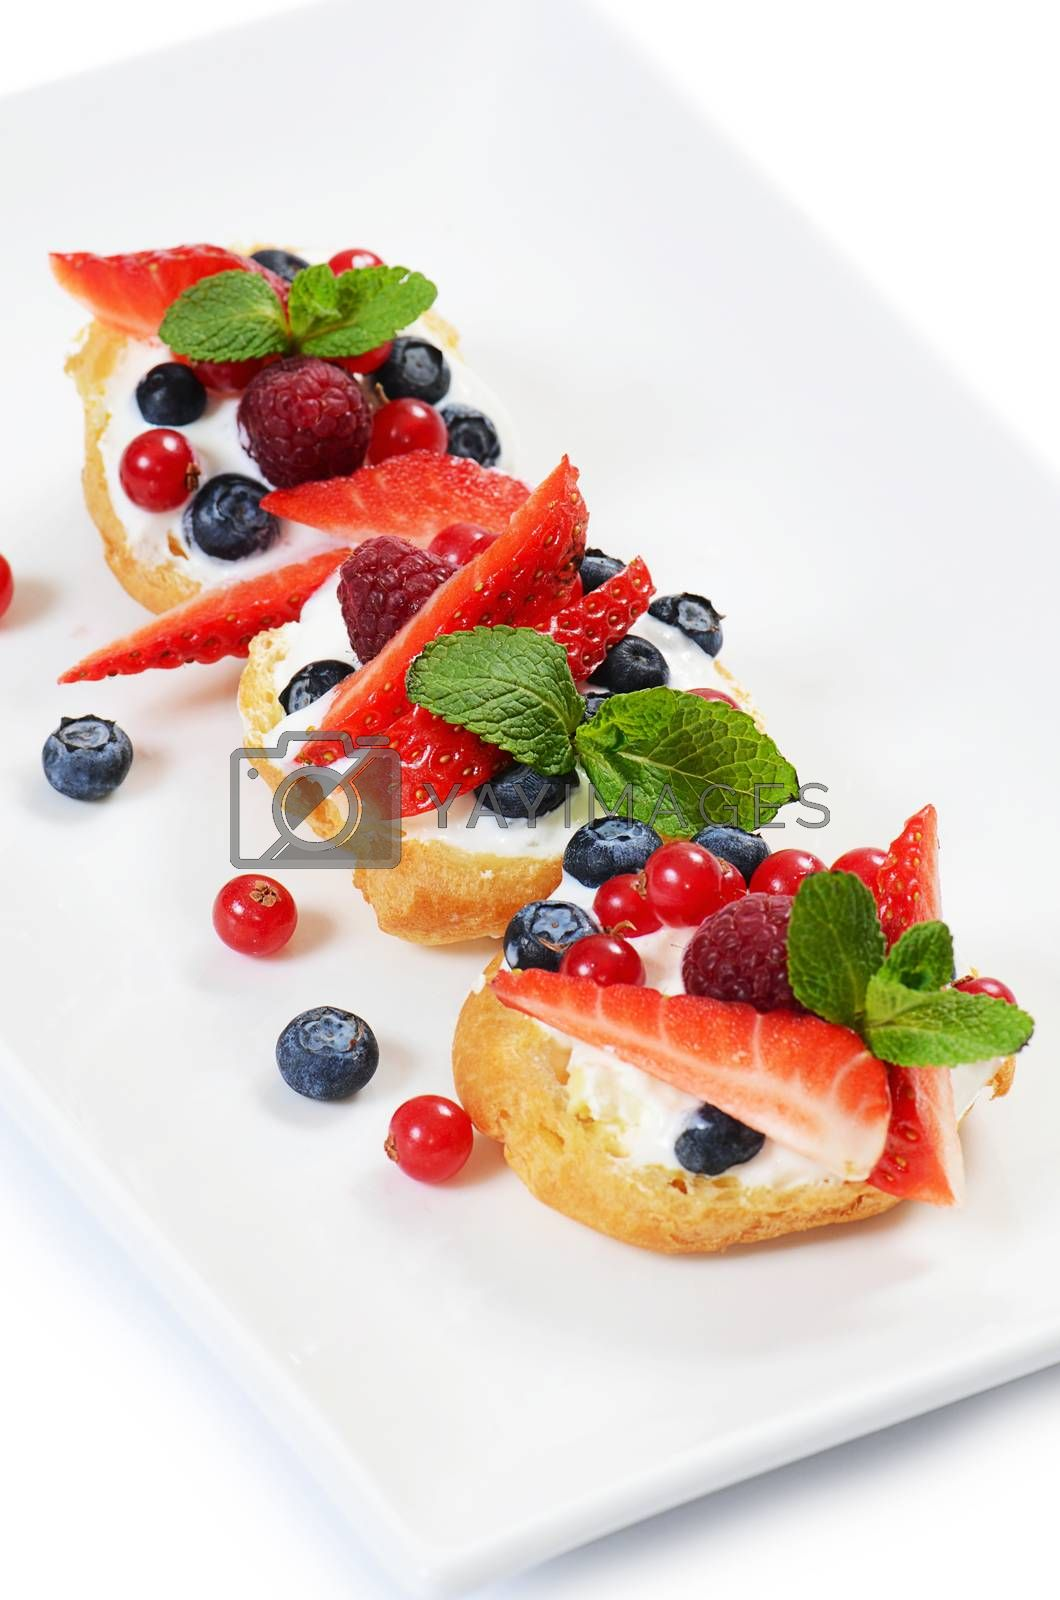 Royalty free image of Profiteroles with berries currant , strawberries by SvetaVo